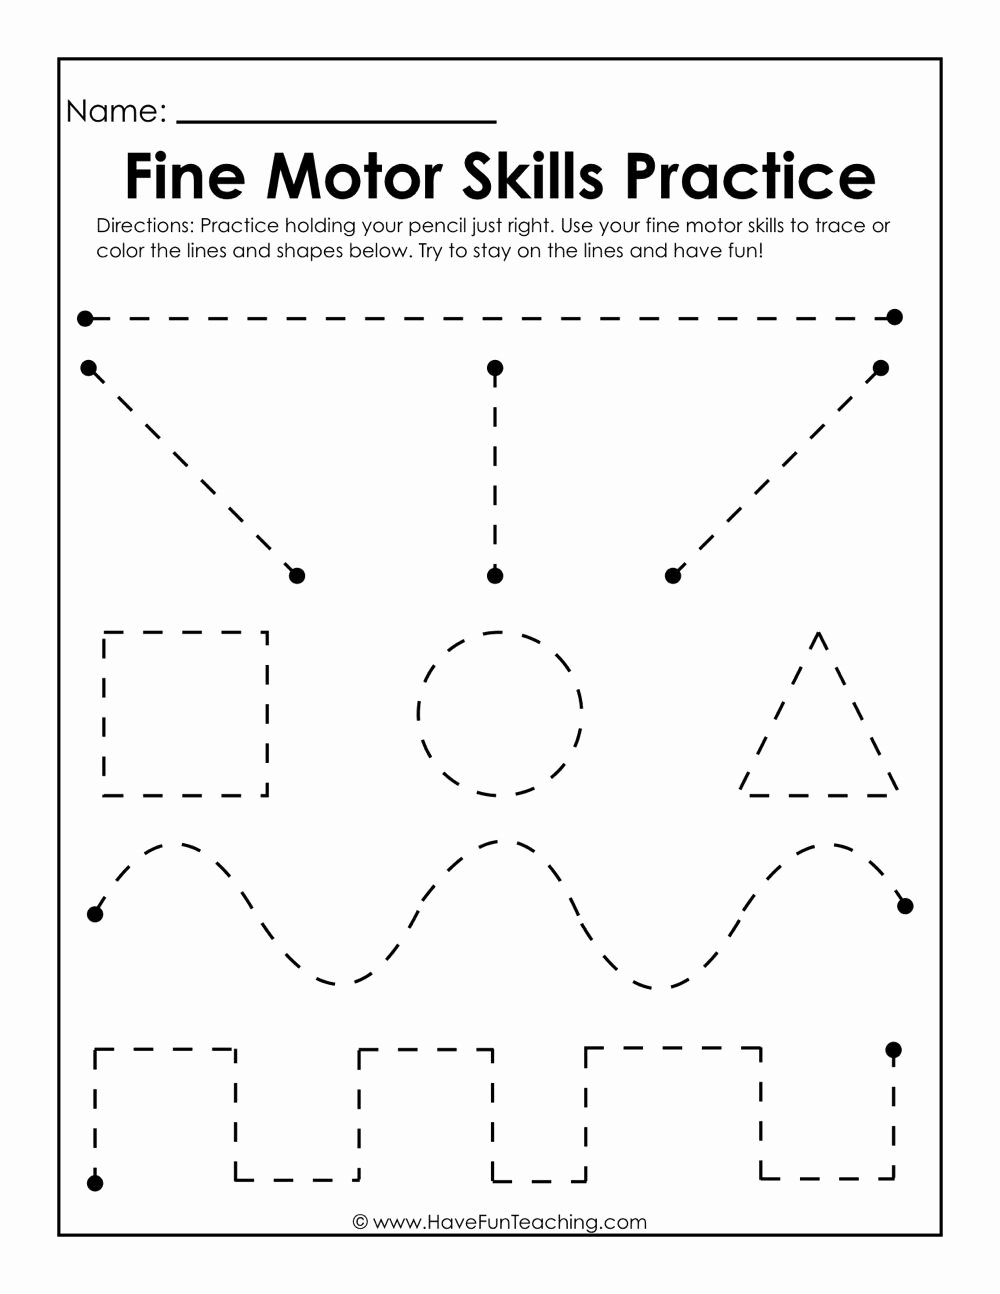 Fine Motor Worksheets for Preschoolers Unique Fine Motor Skills Practice Worksheet